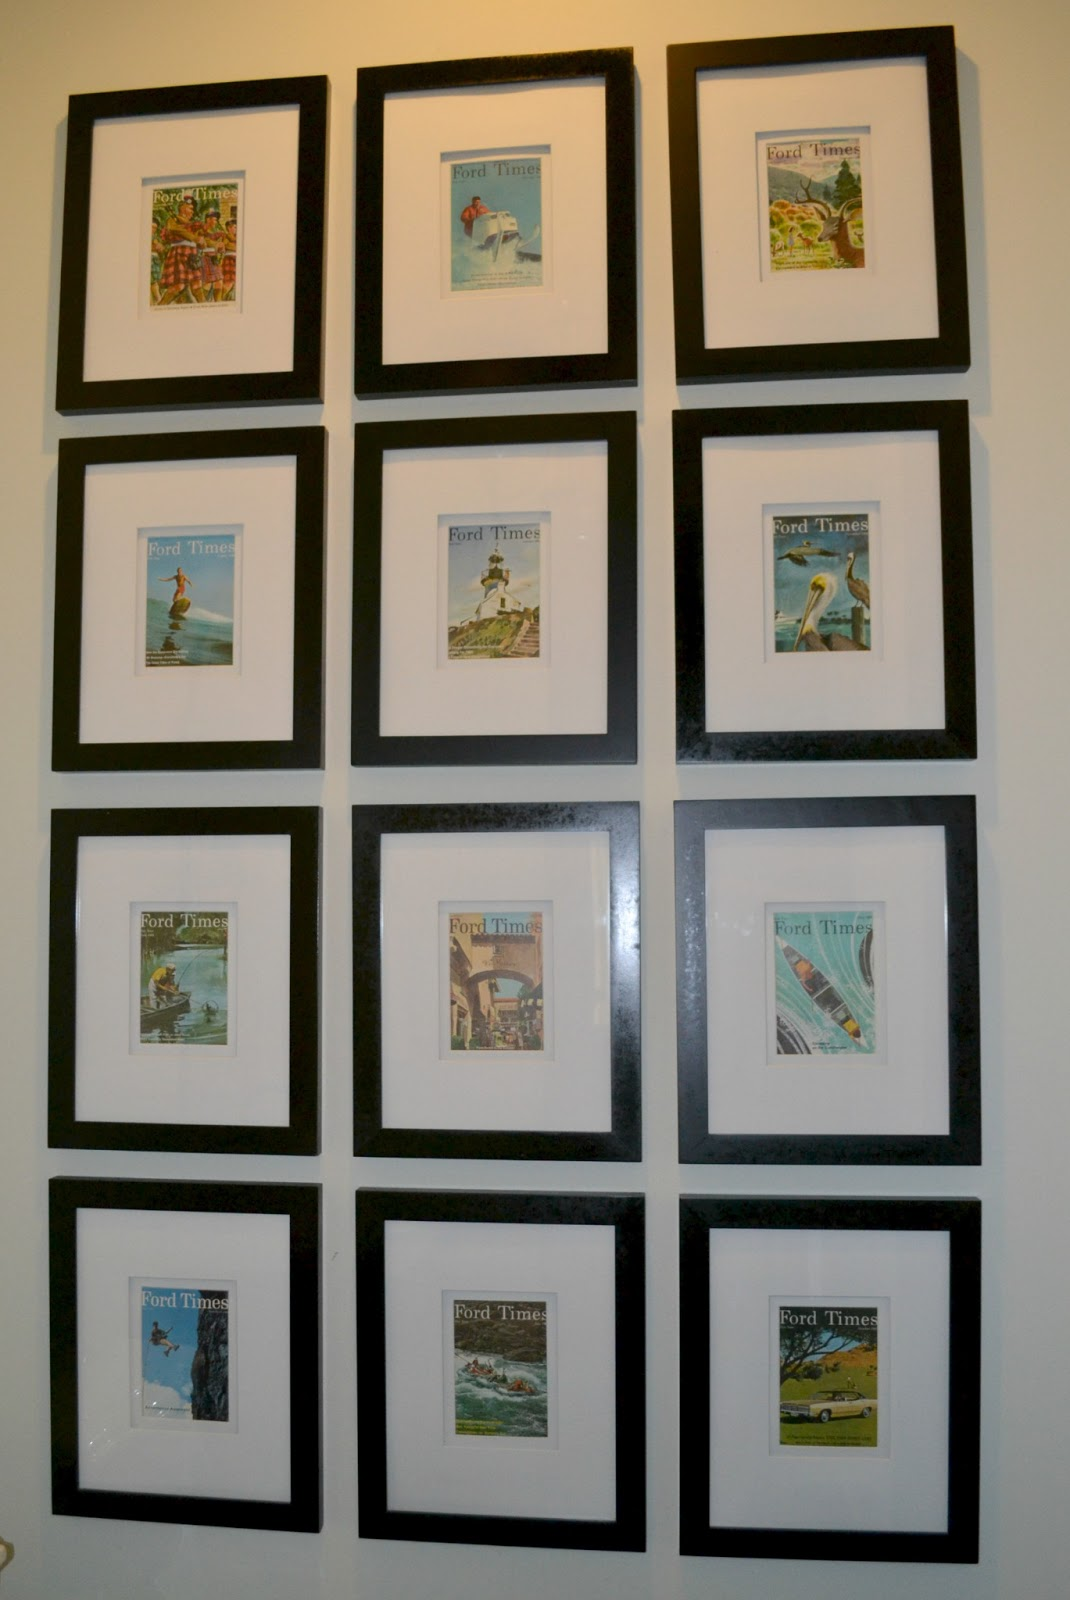 Decor You Adore Wall Art How To Make A Big Impact With A Small Budget